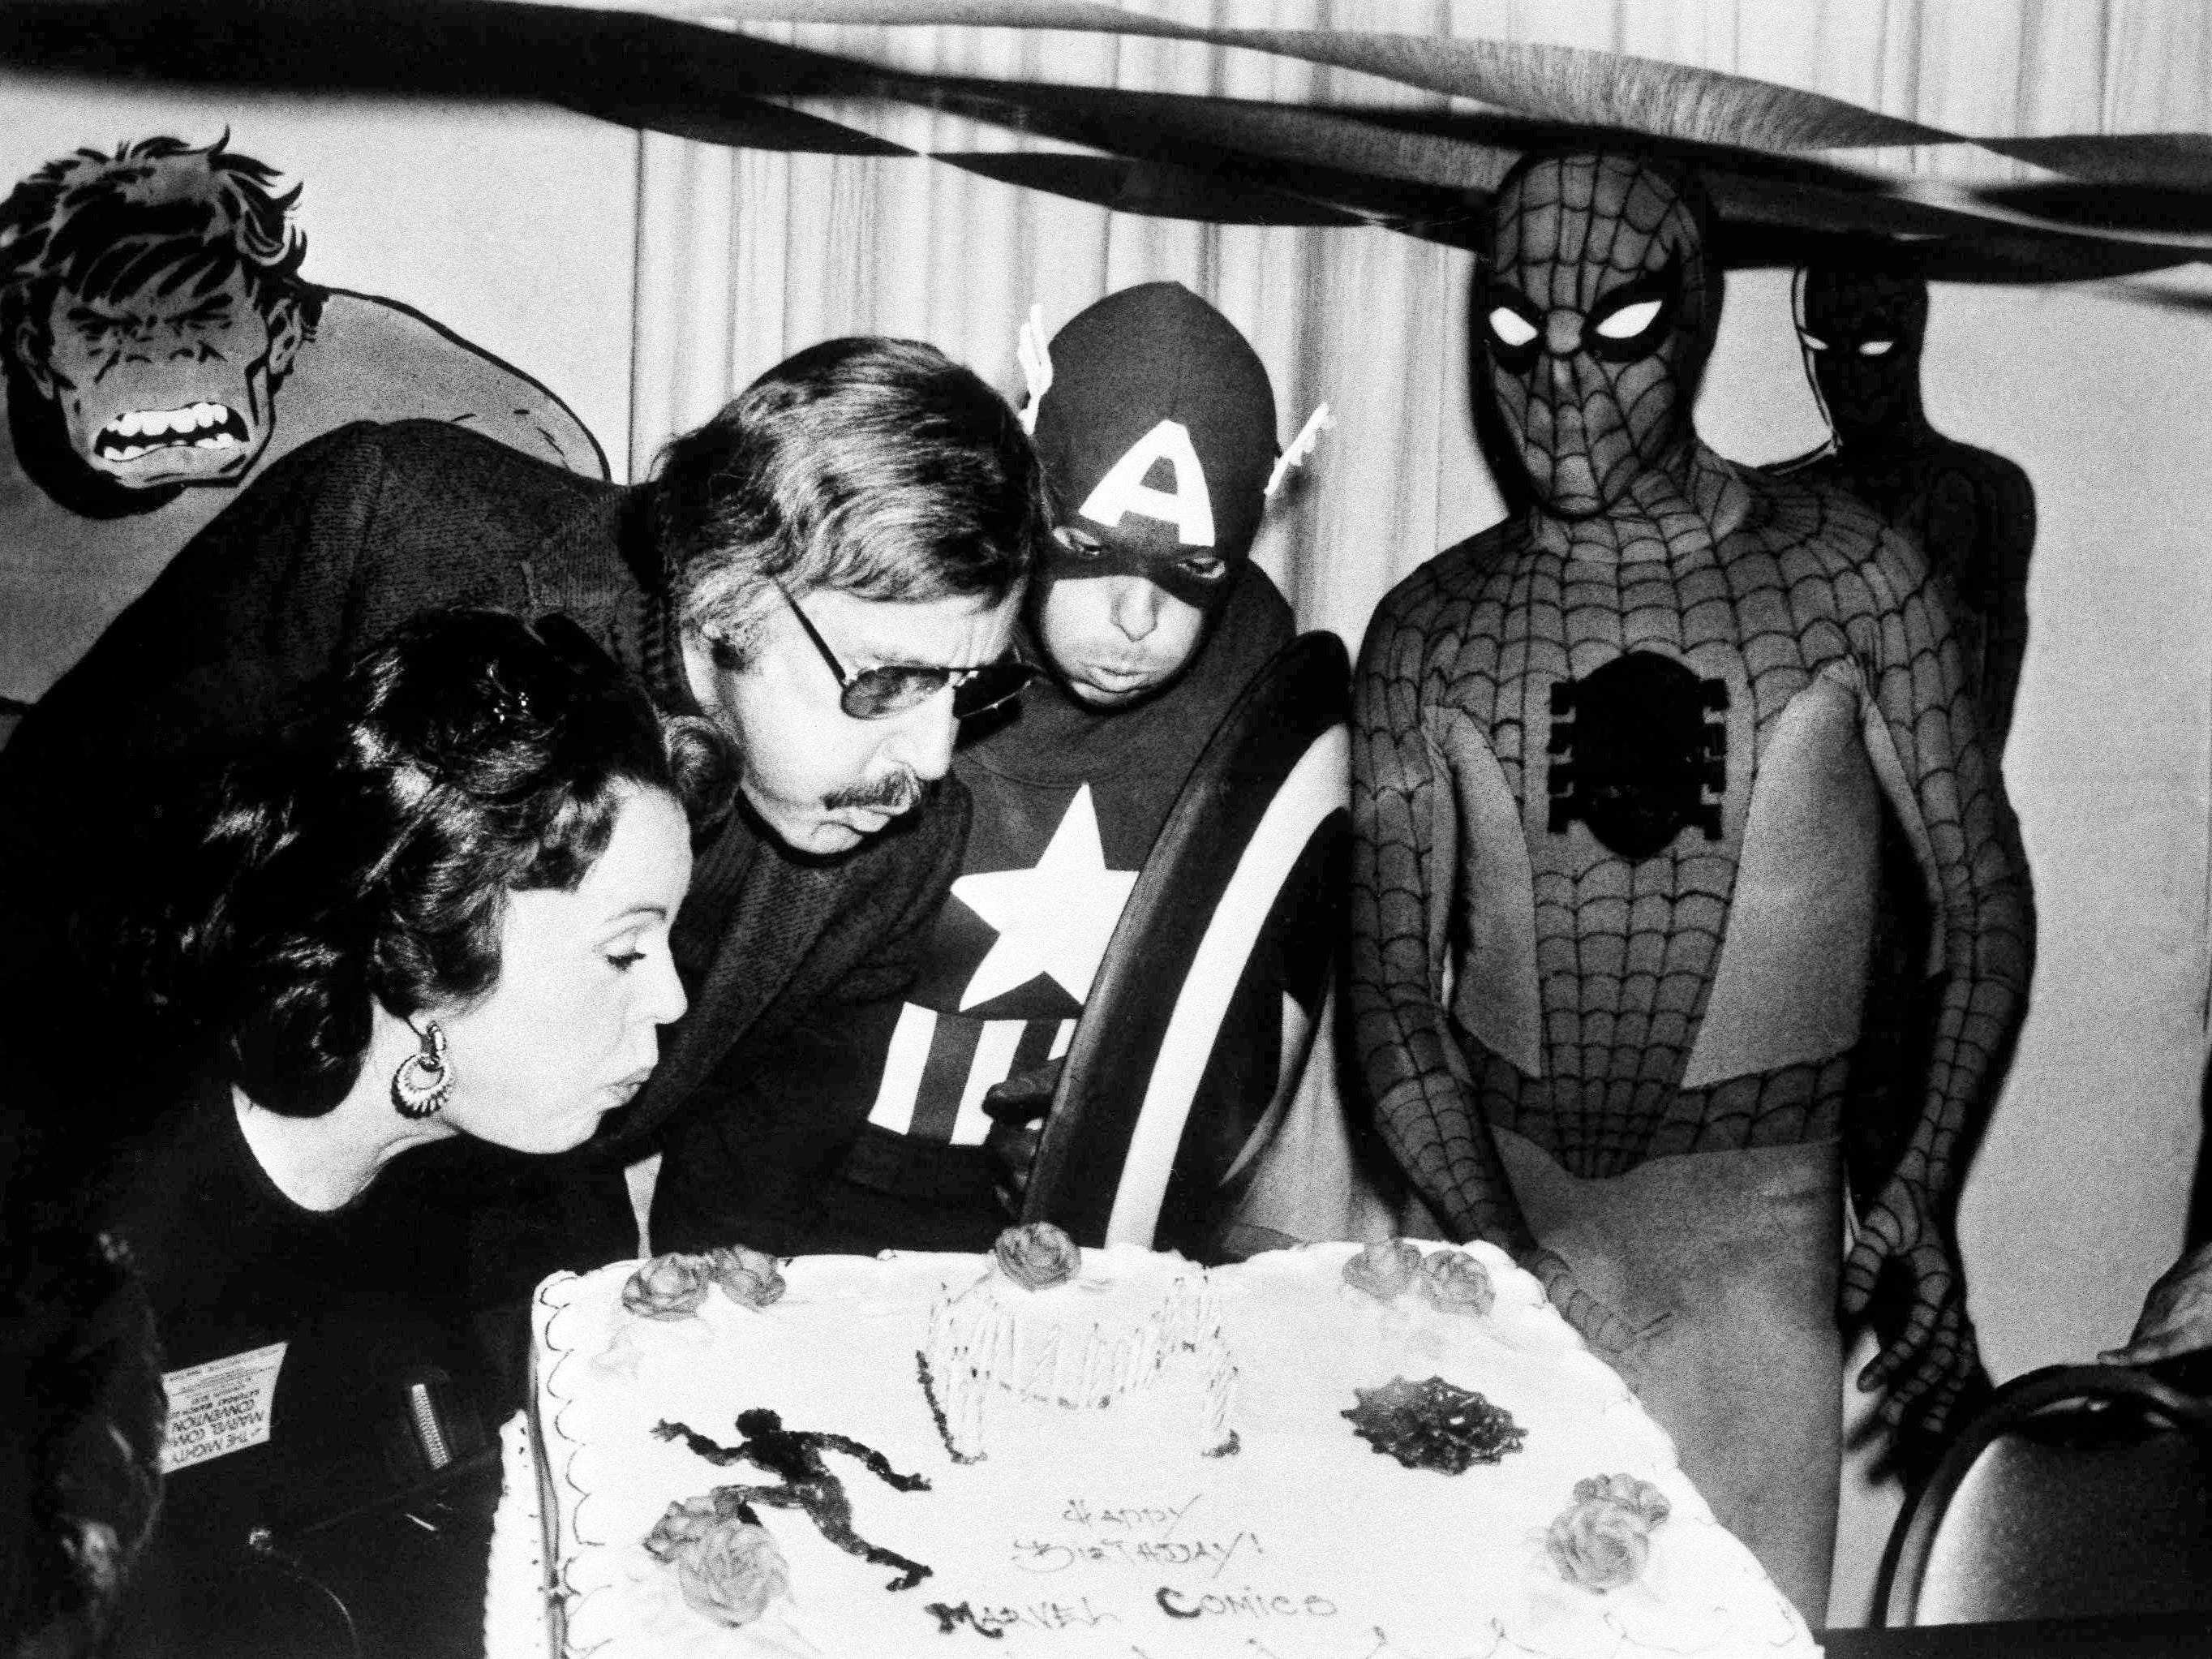 Mighty Marvel comic book publisher Stan Lee, center left, blows out the candles on the Marvel Comics birthday cake at opening day ceremonies of the First Mighty Marvel Comic Book Convention, March 22, 1975, in New York. At left is Lee's wife Joan and on the far right, Spider-Man. Another Marvel Superhero, Captain America, looks on from the rear.